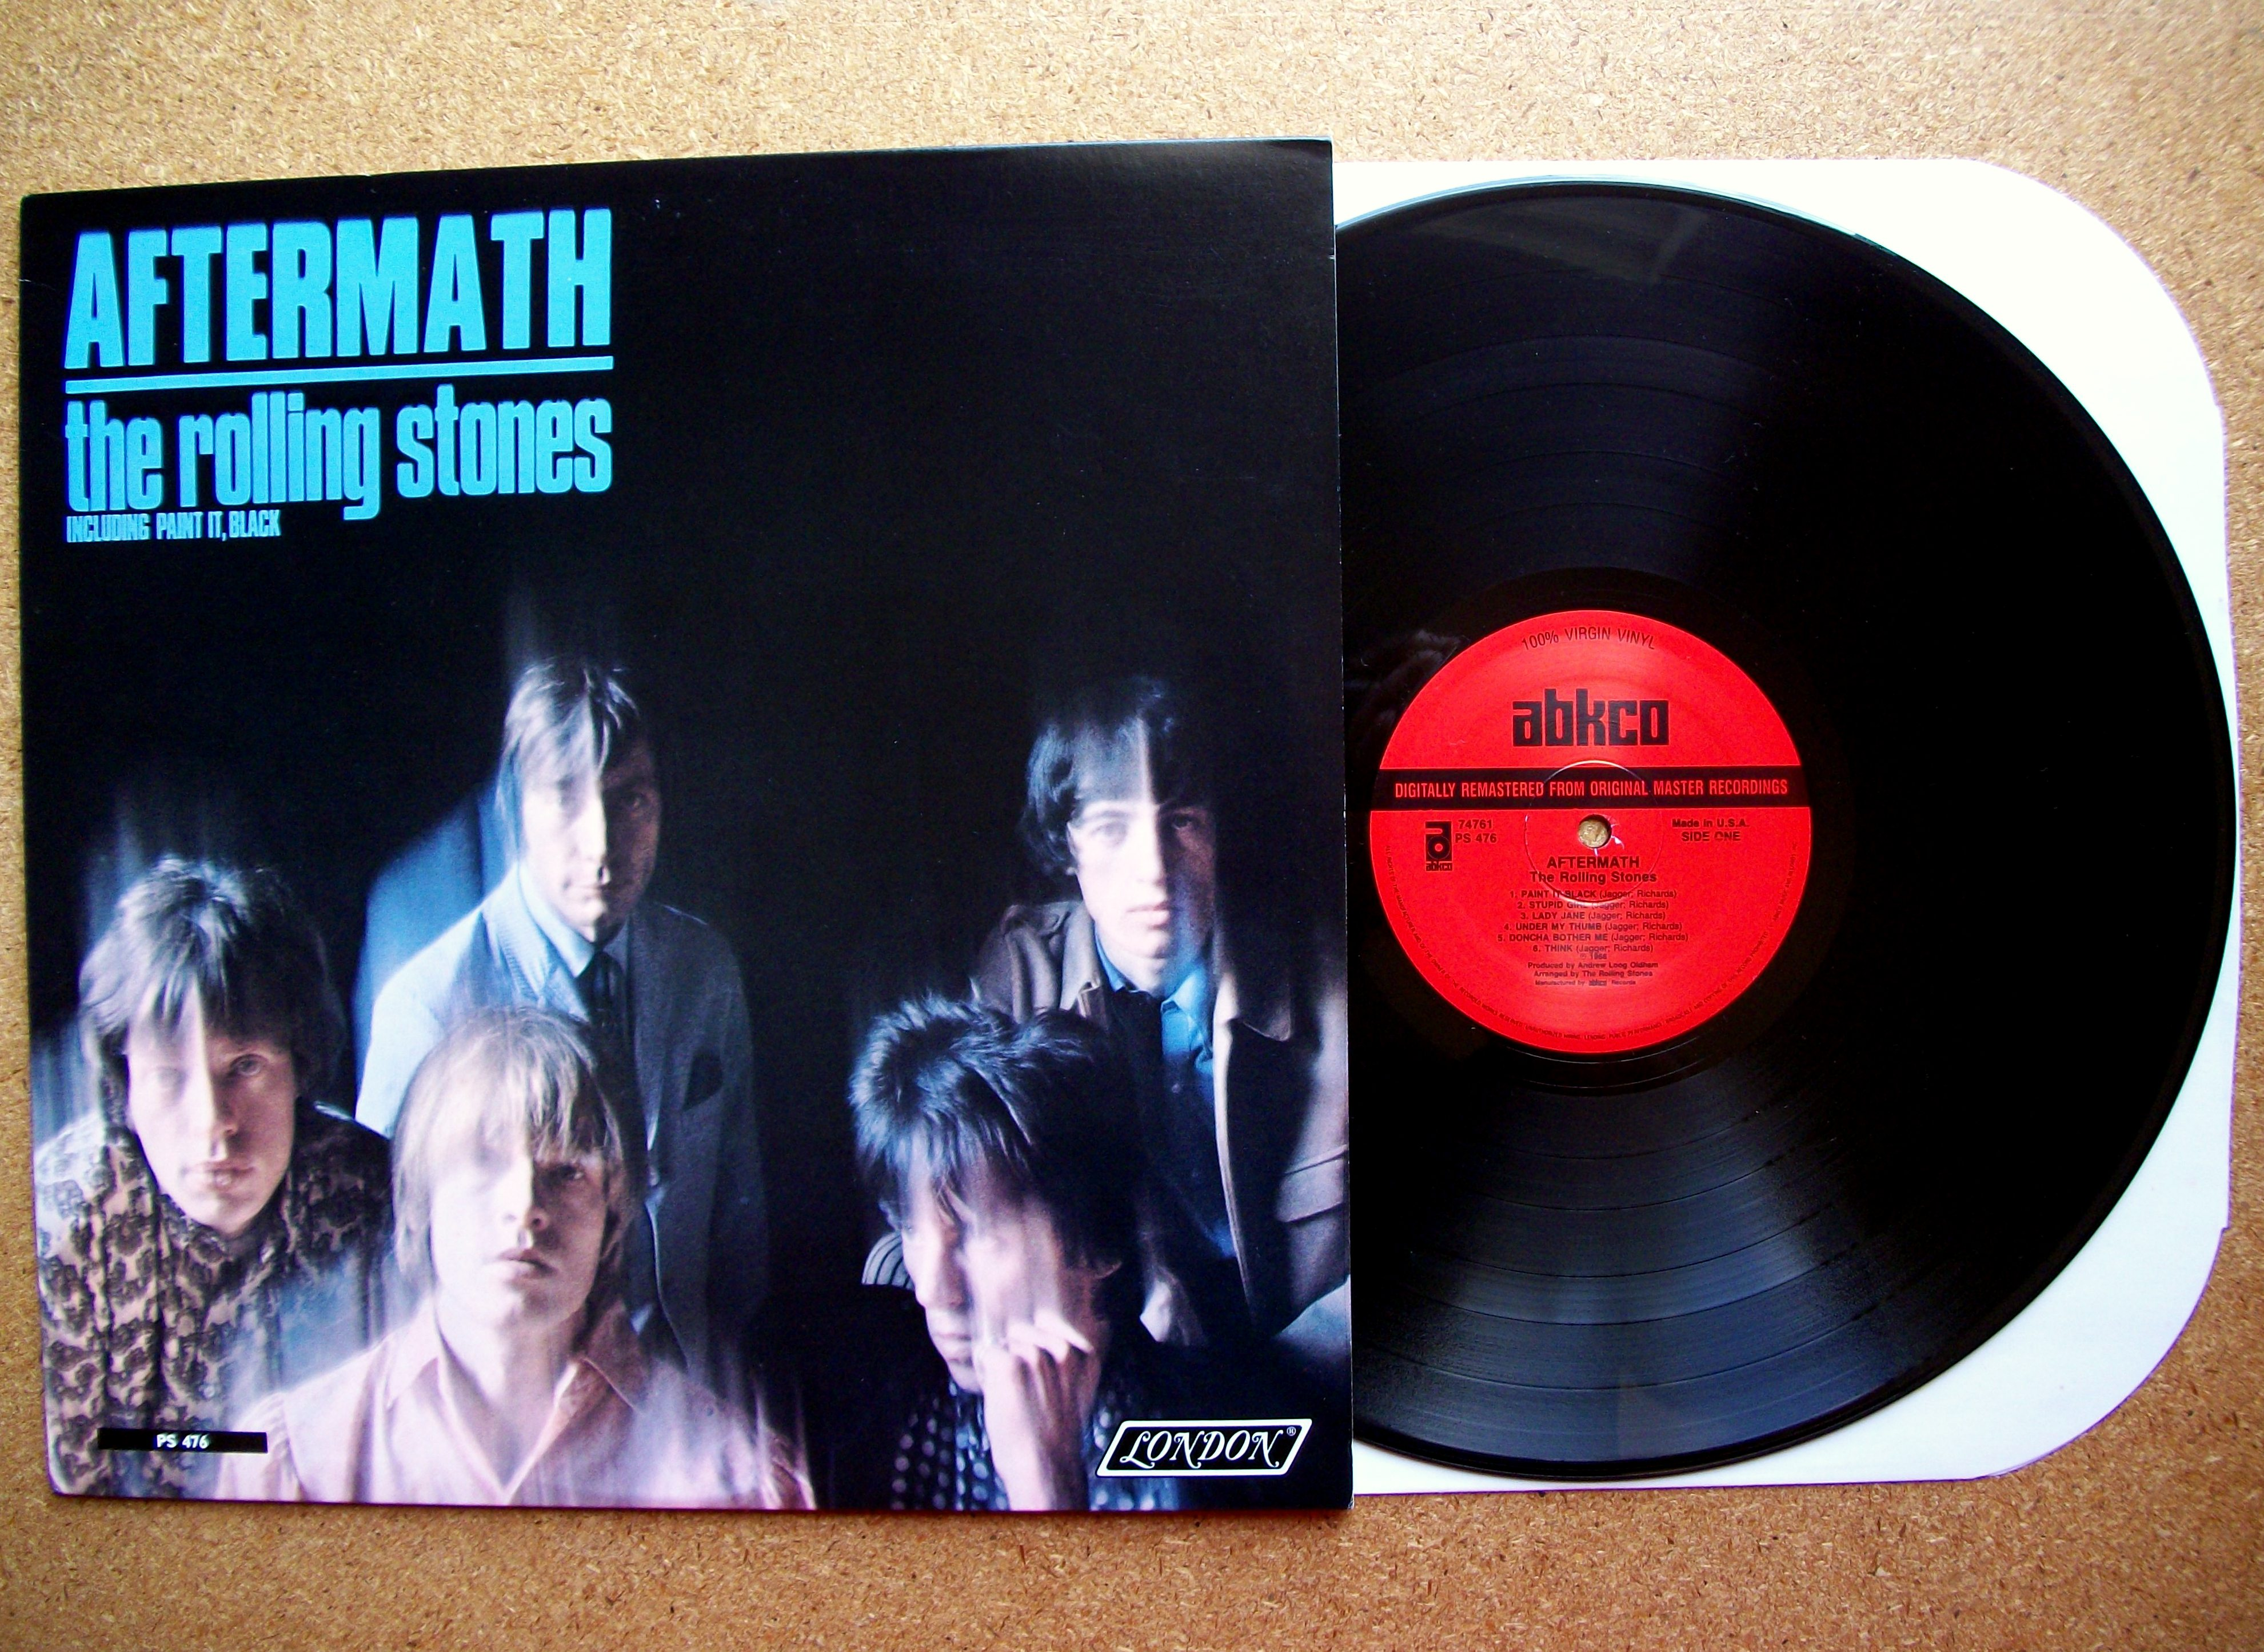 SINISTER VINYL COLLECTION: THE ROLLING STONES – AFTERMATH